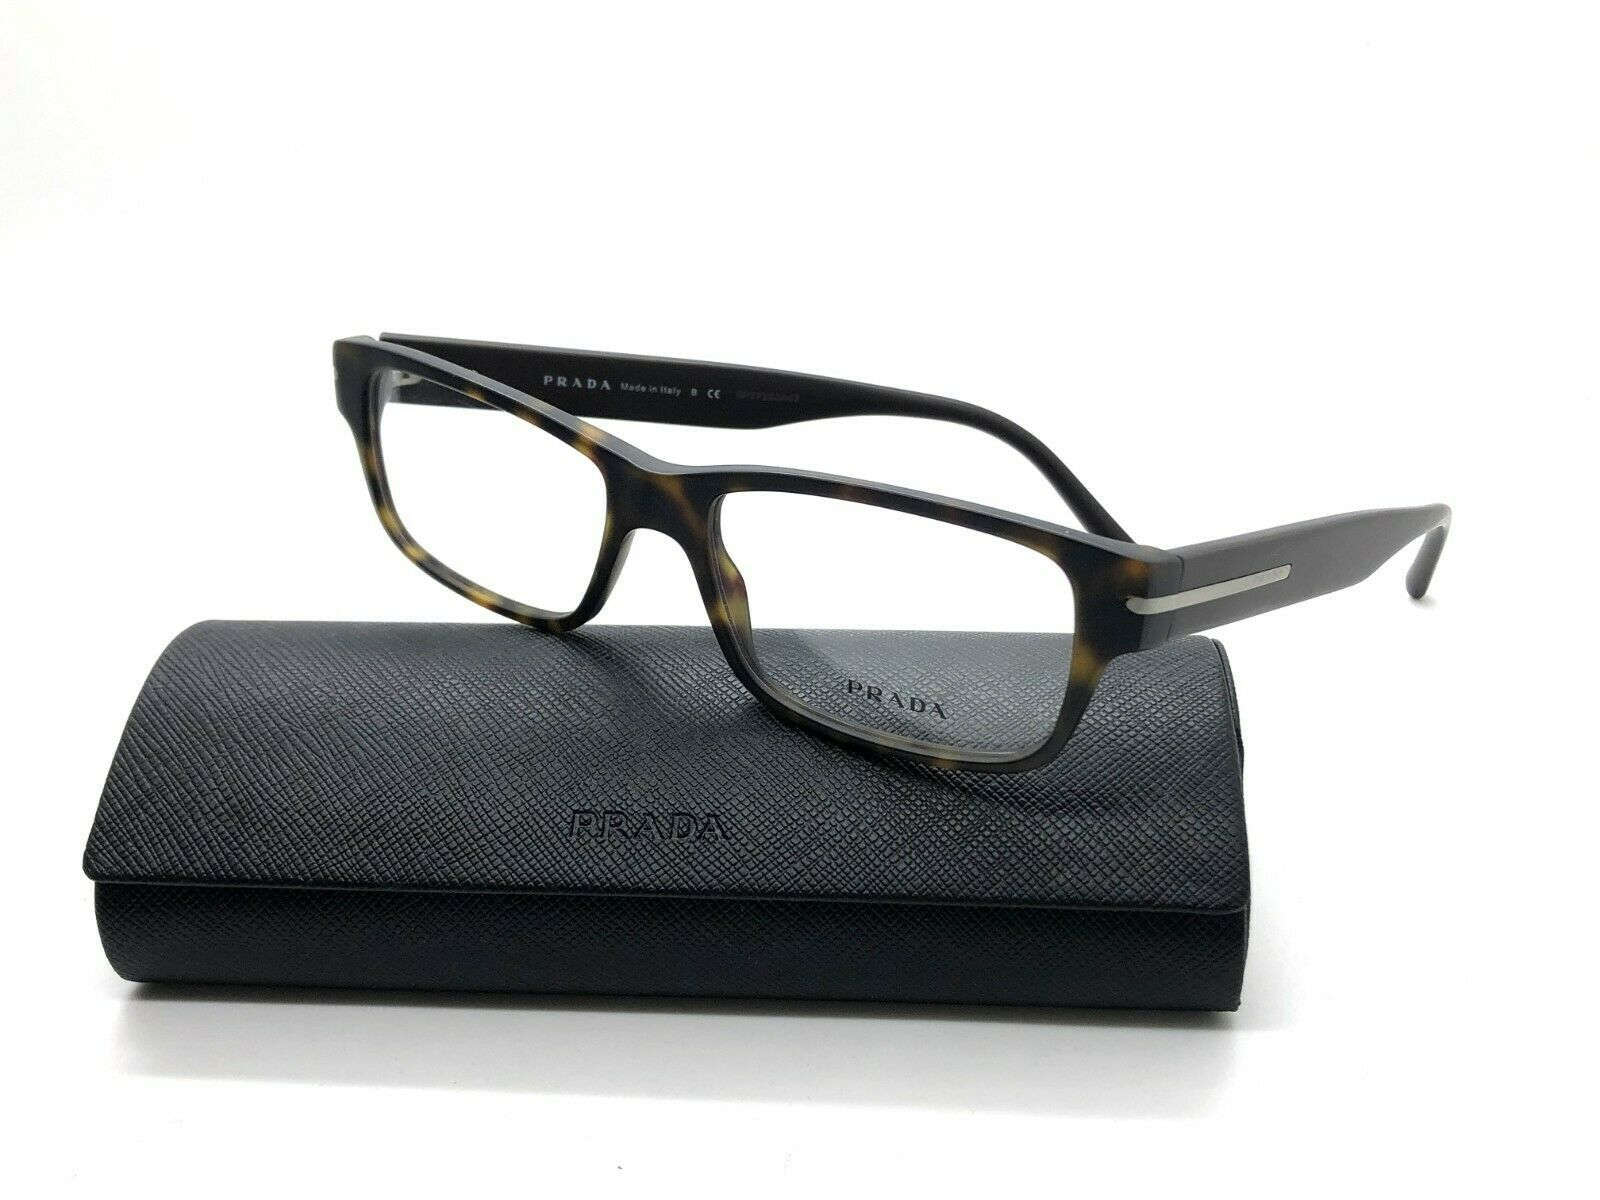 6d9387593 Authentic PRADA VPR 22R HAQ-1O1 Matte Tortoise/Brown 54mm RX Eyeglasses -  $106.67